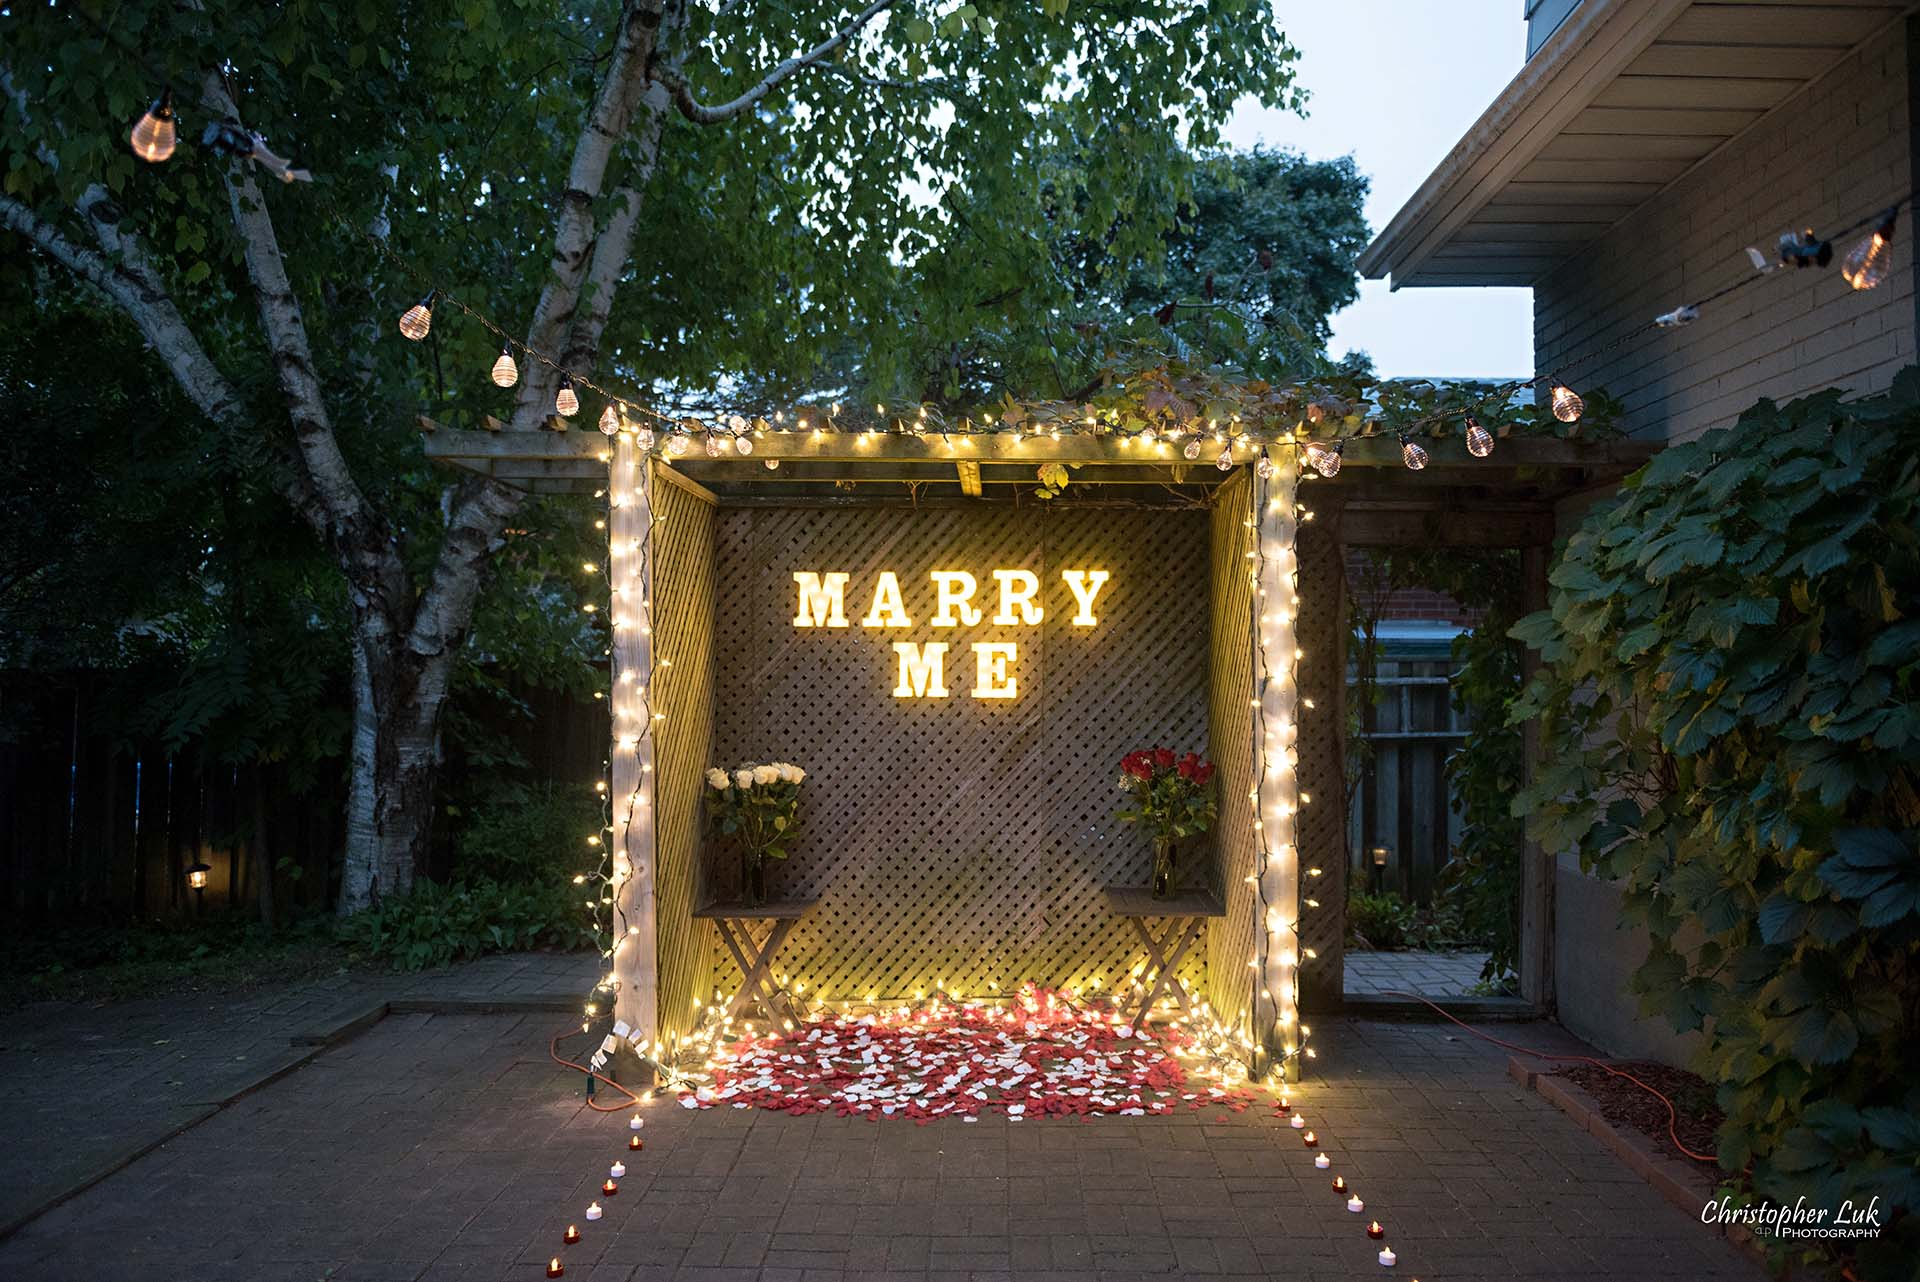 Christopher Luk Toronto Wedding Photographer - Backyard Surprise Proposal Engaged Engagement Gazebo Christmas Fairy Twinkle Lights Flower Petals Marry Me Wide Lights Setup Wide